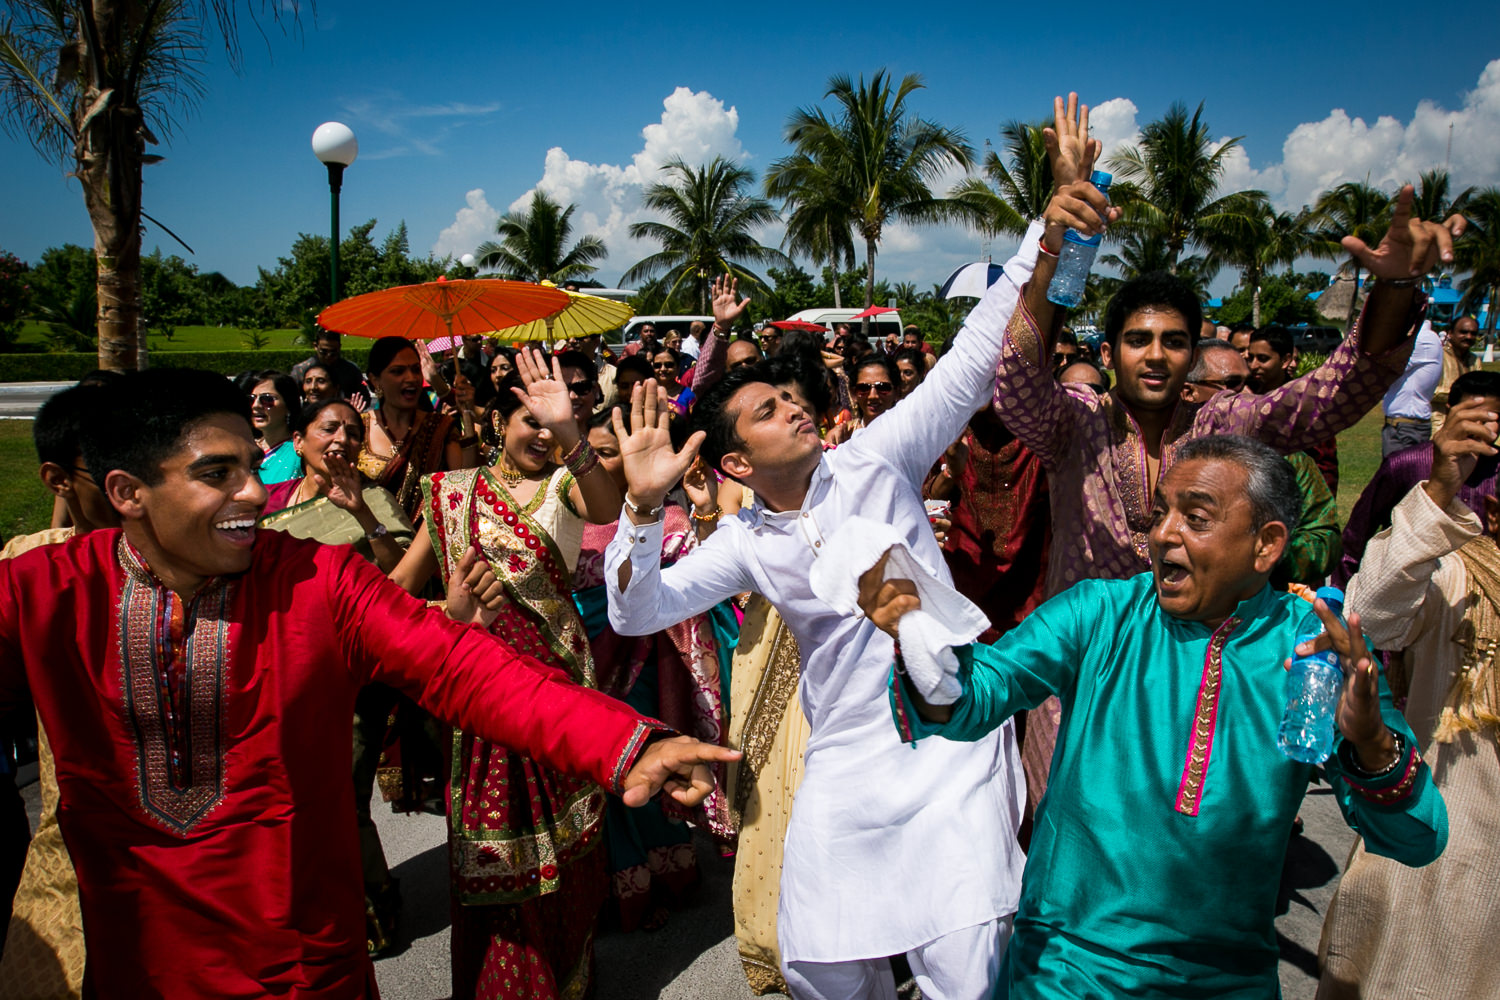 Paradisus Cancun Indian Wedding - Guests Celebrating Wedding